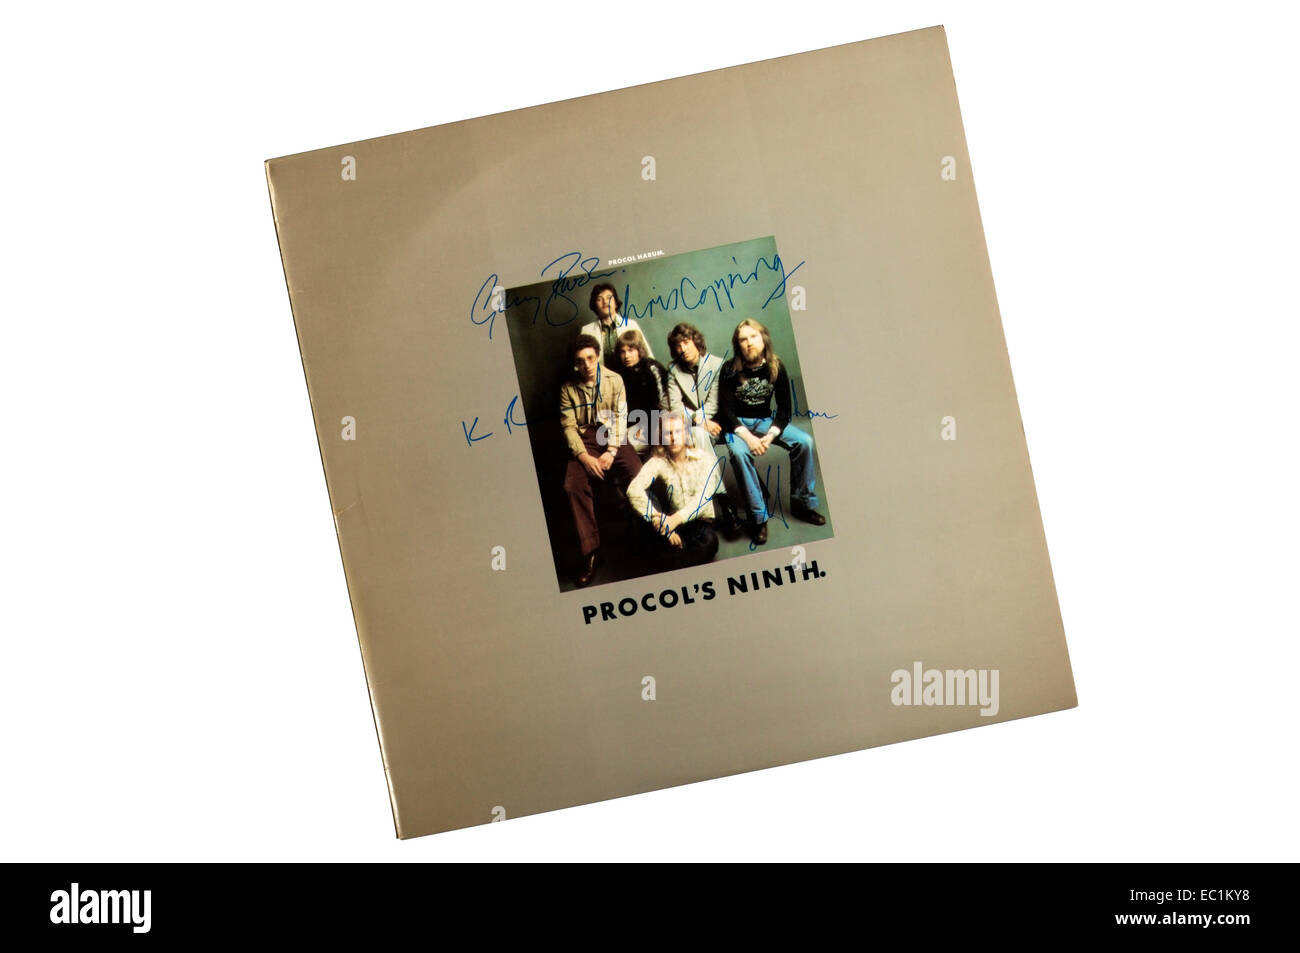 Unsurprisingly Procol's Ninth was the 9th album by Procol Harum. It was released in 1975. - Stock Image